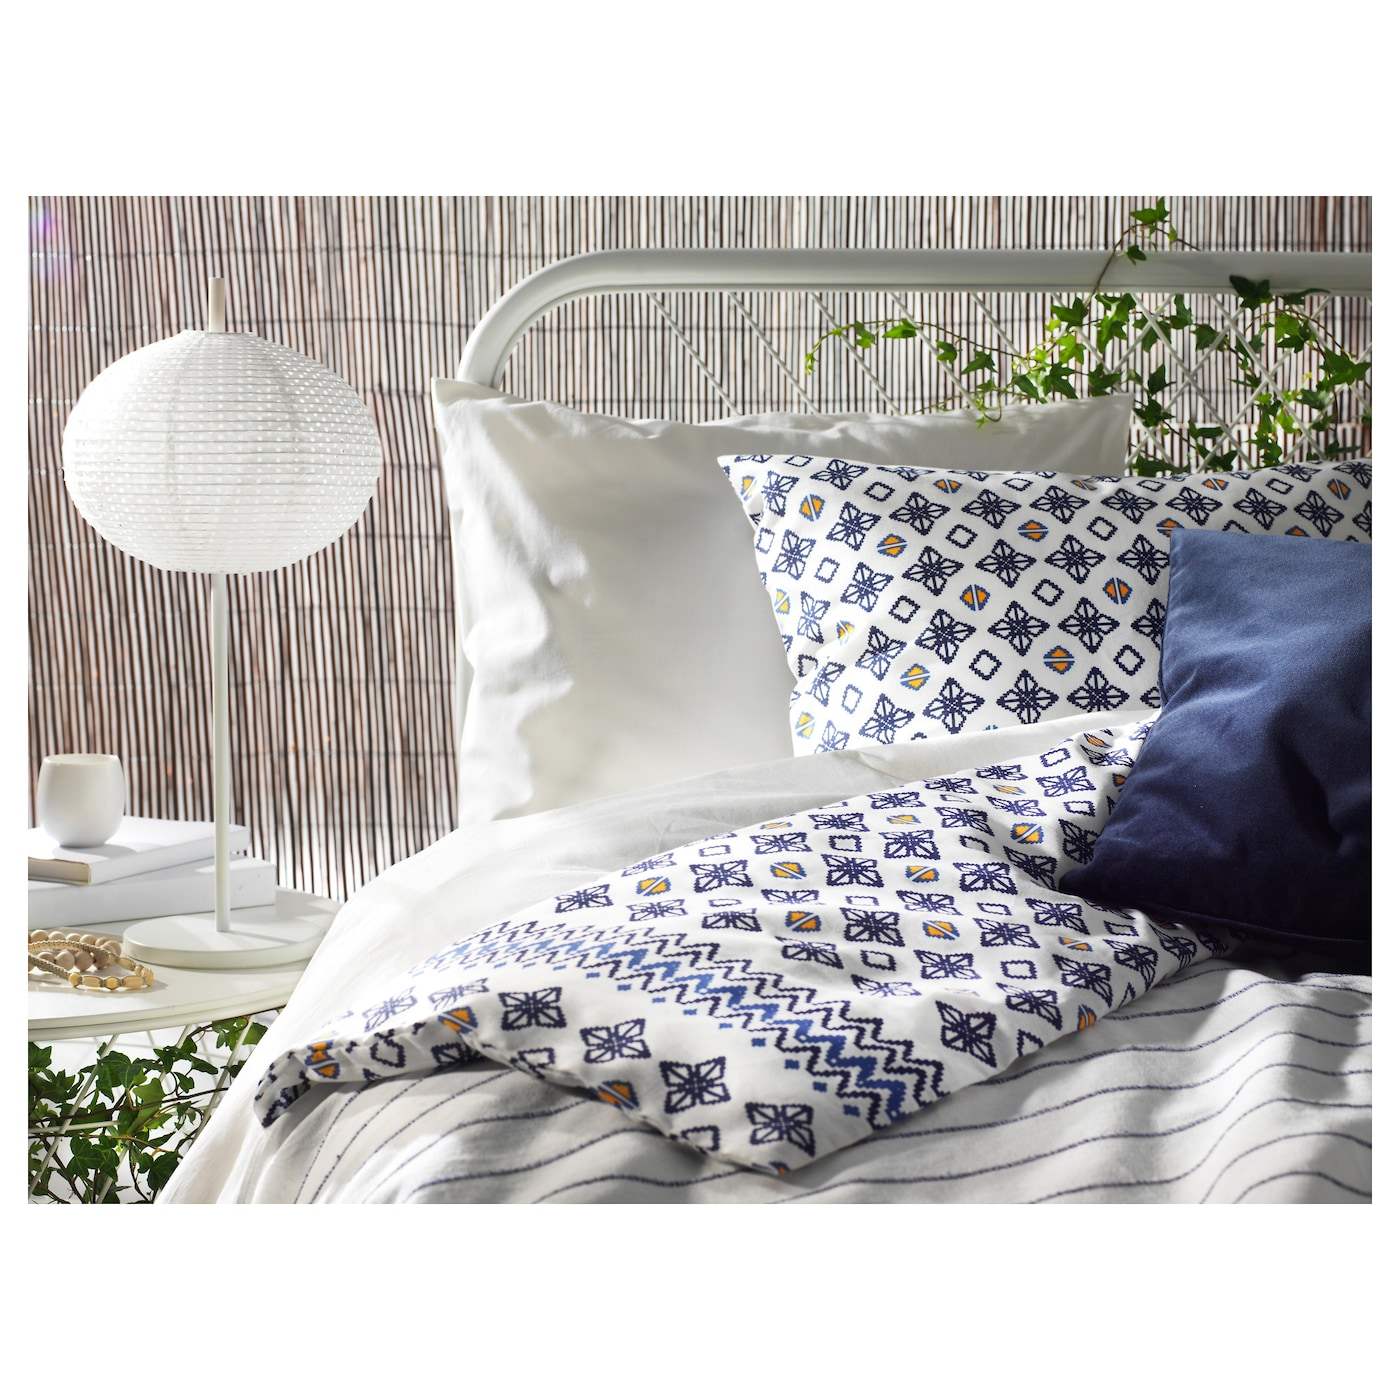 sommar 2017 quilt cover and 4 pillowcases white blue 200x200 50x80 cm ikea. Black Bedroom Furniture Sets. Home Design Ideas